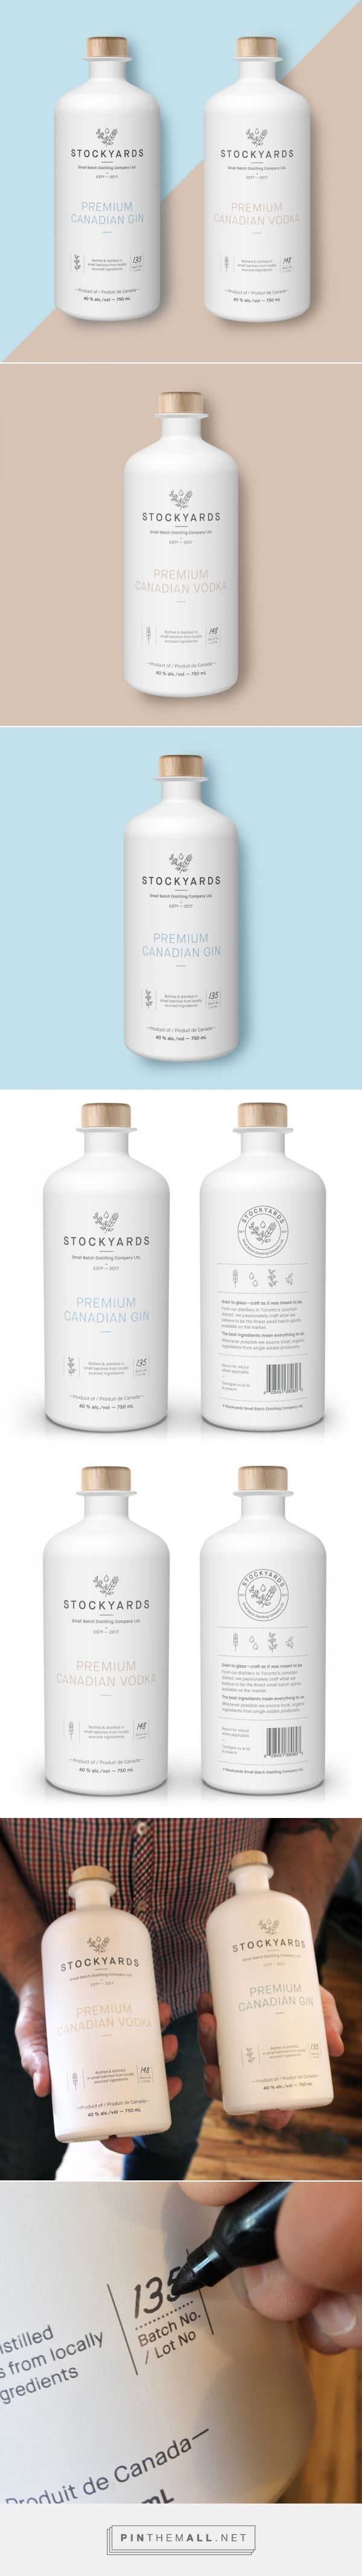 Stockyards Small Batch Distilling Co. -  Packaging of the World - Creative Package Design Gallery - http://www.packagingoftheworld.com/2017/05/stockyards-small-batch-distilling-co.html